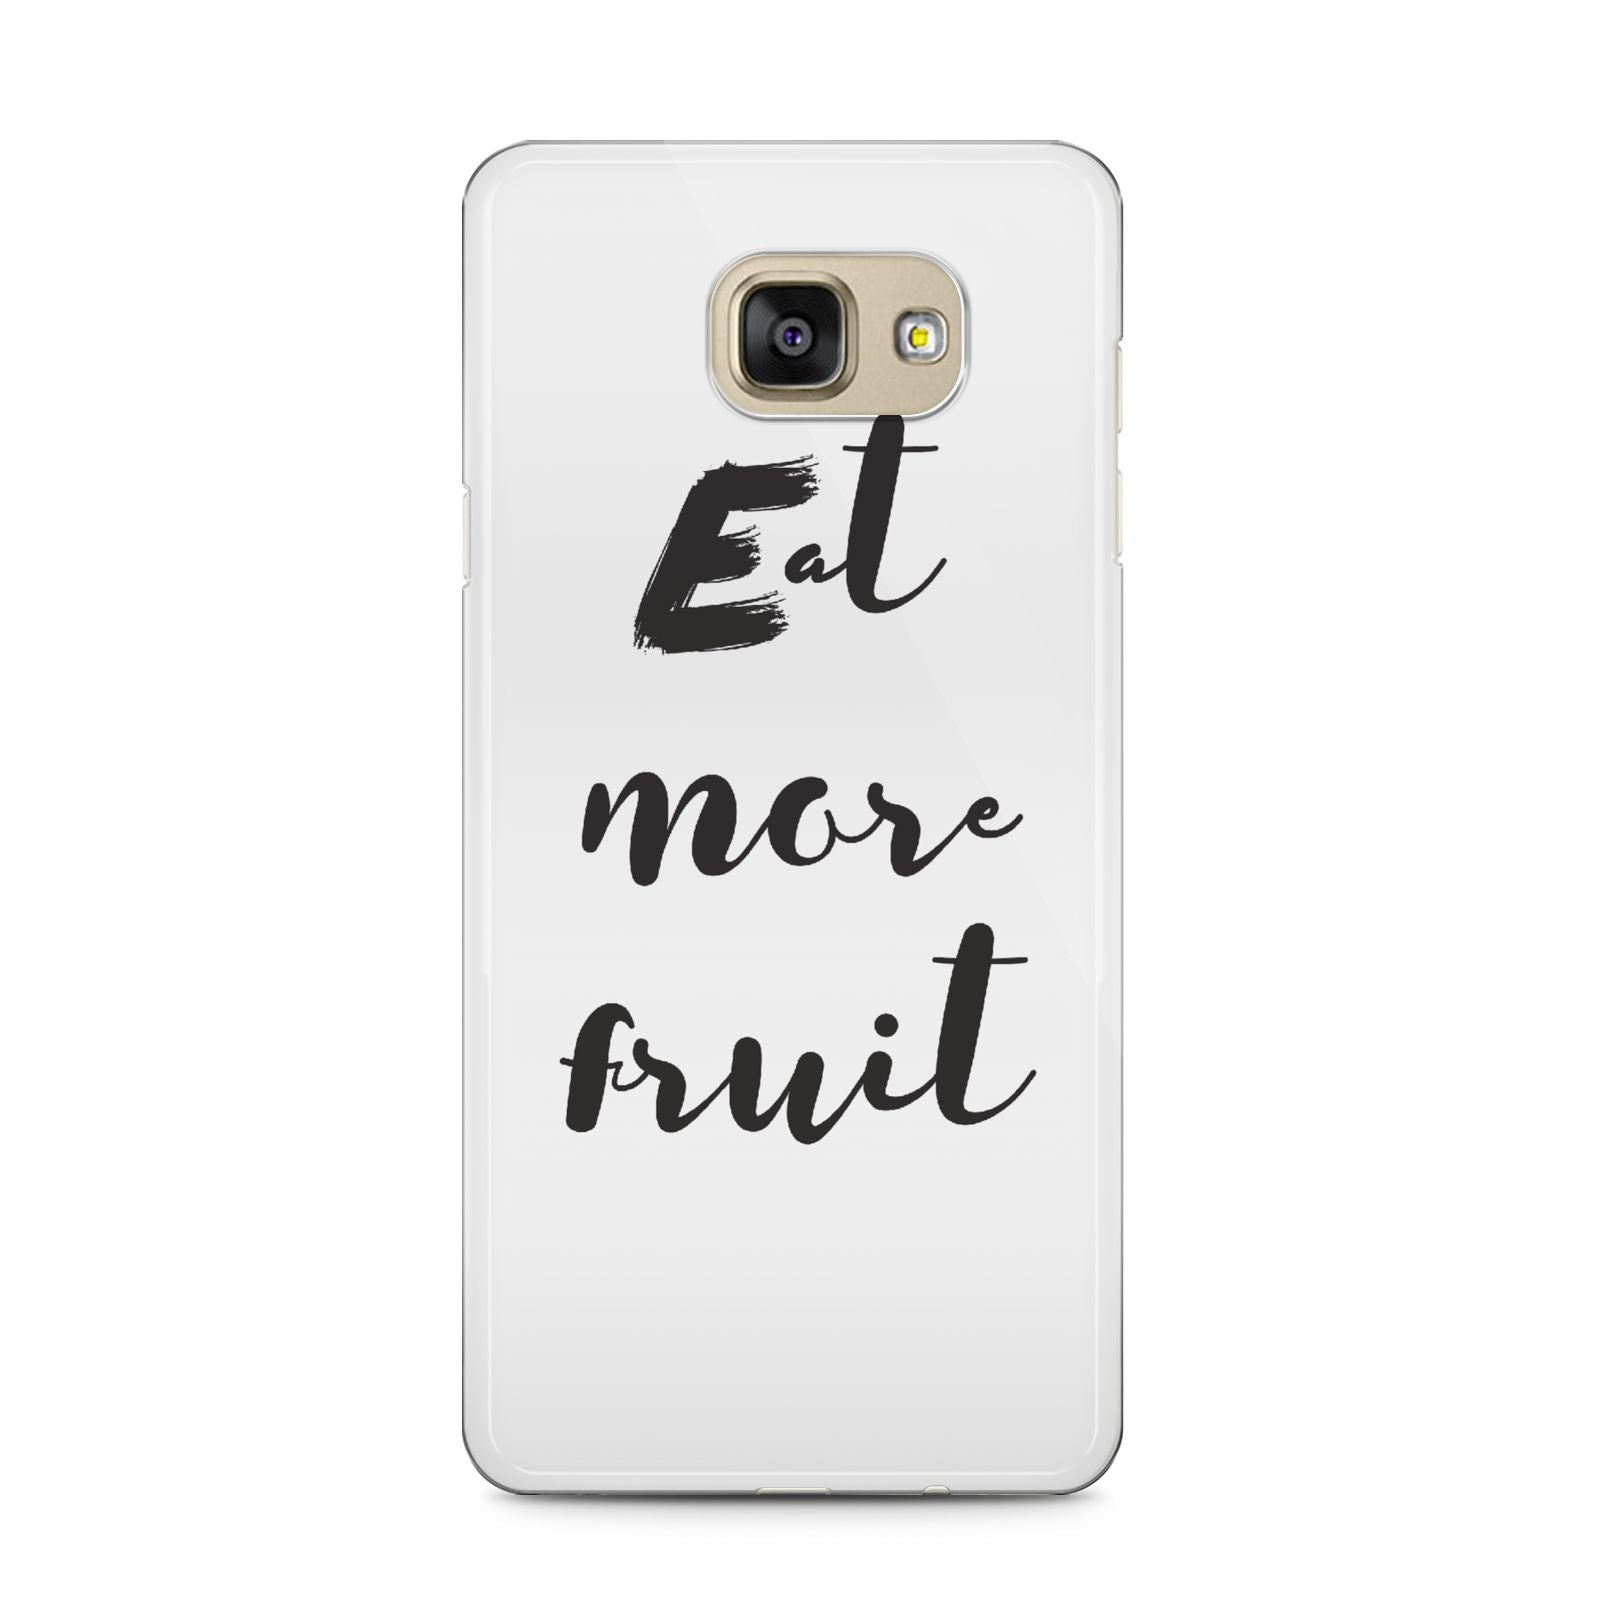 Eat More Fruit Samsung Galaxy A5 2016 Case on gold phone